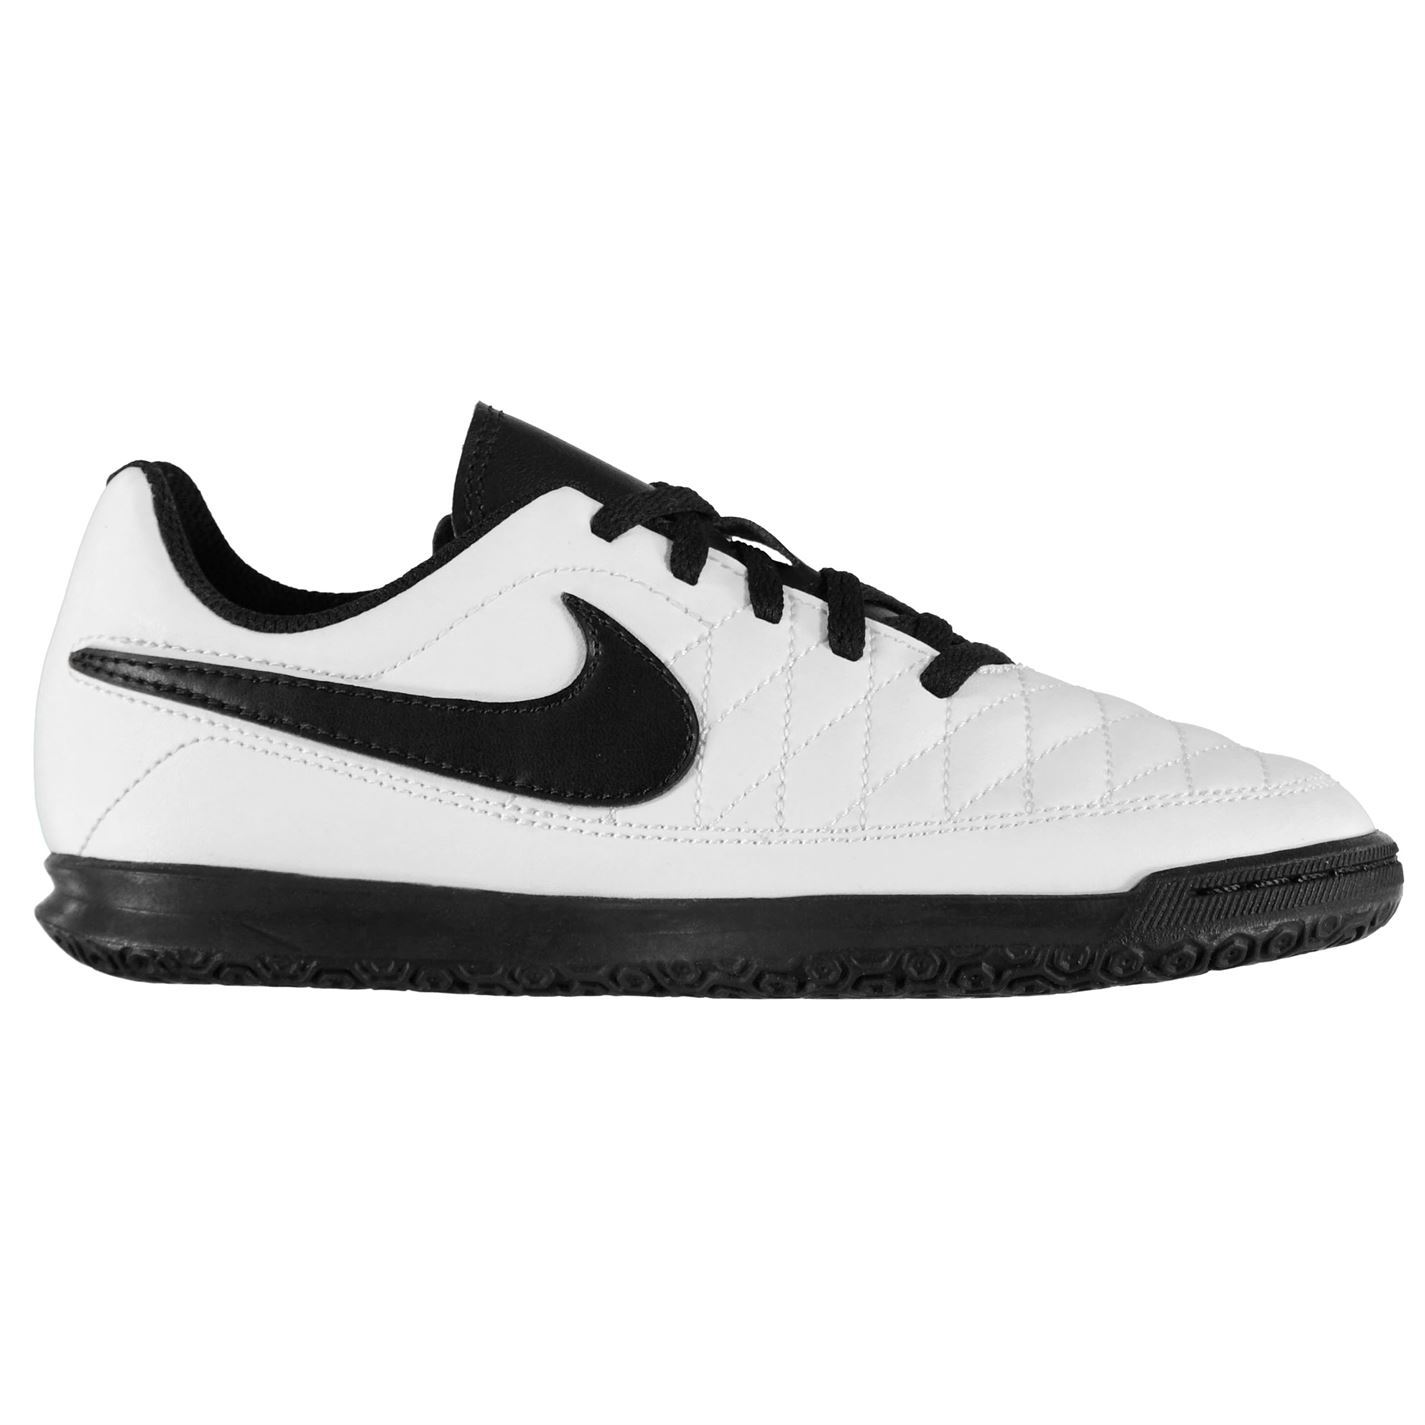 Nike-majestry-Indoor-Court-Football-Baskets-enfant-foot-baskets-chaussures miniature 15